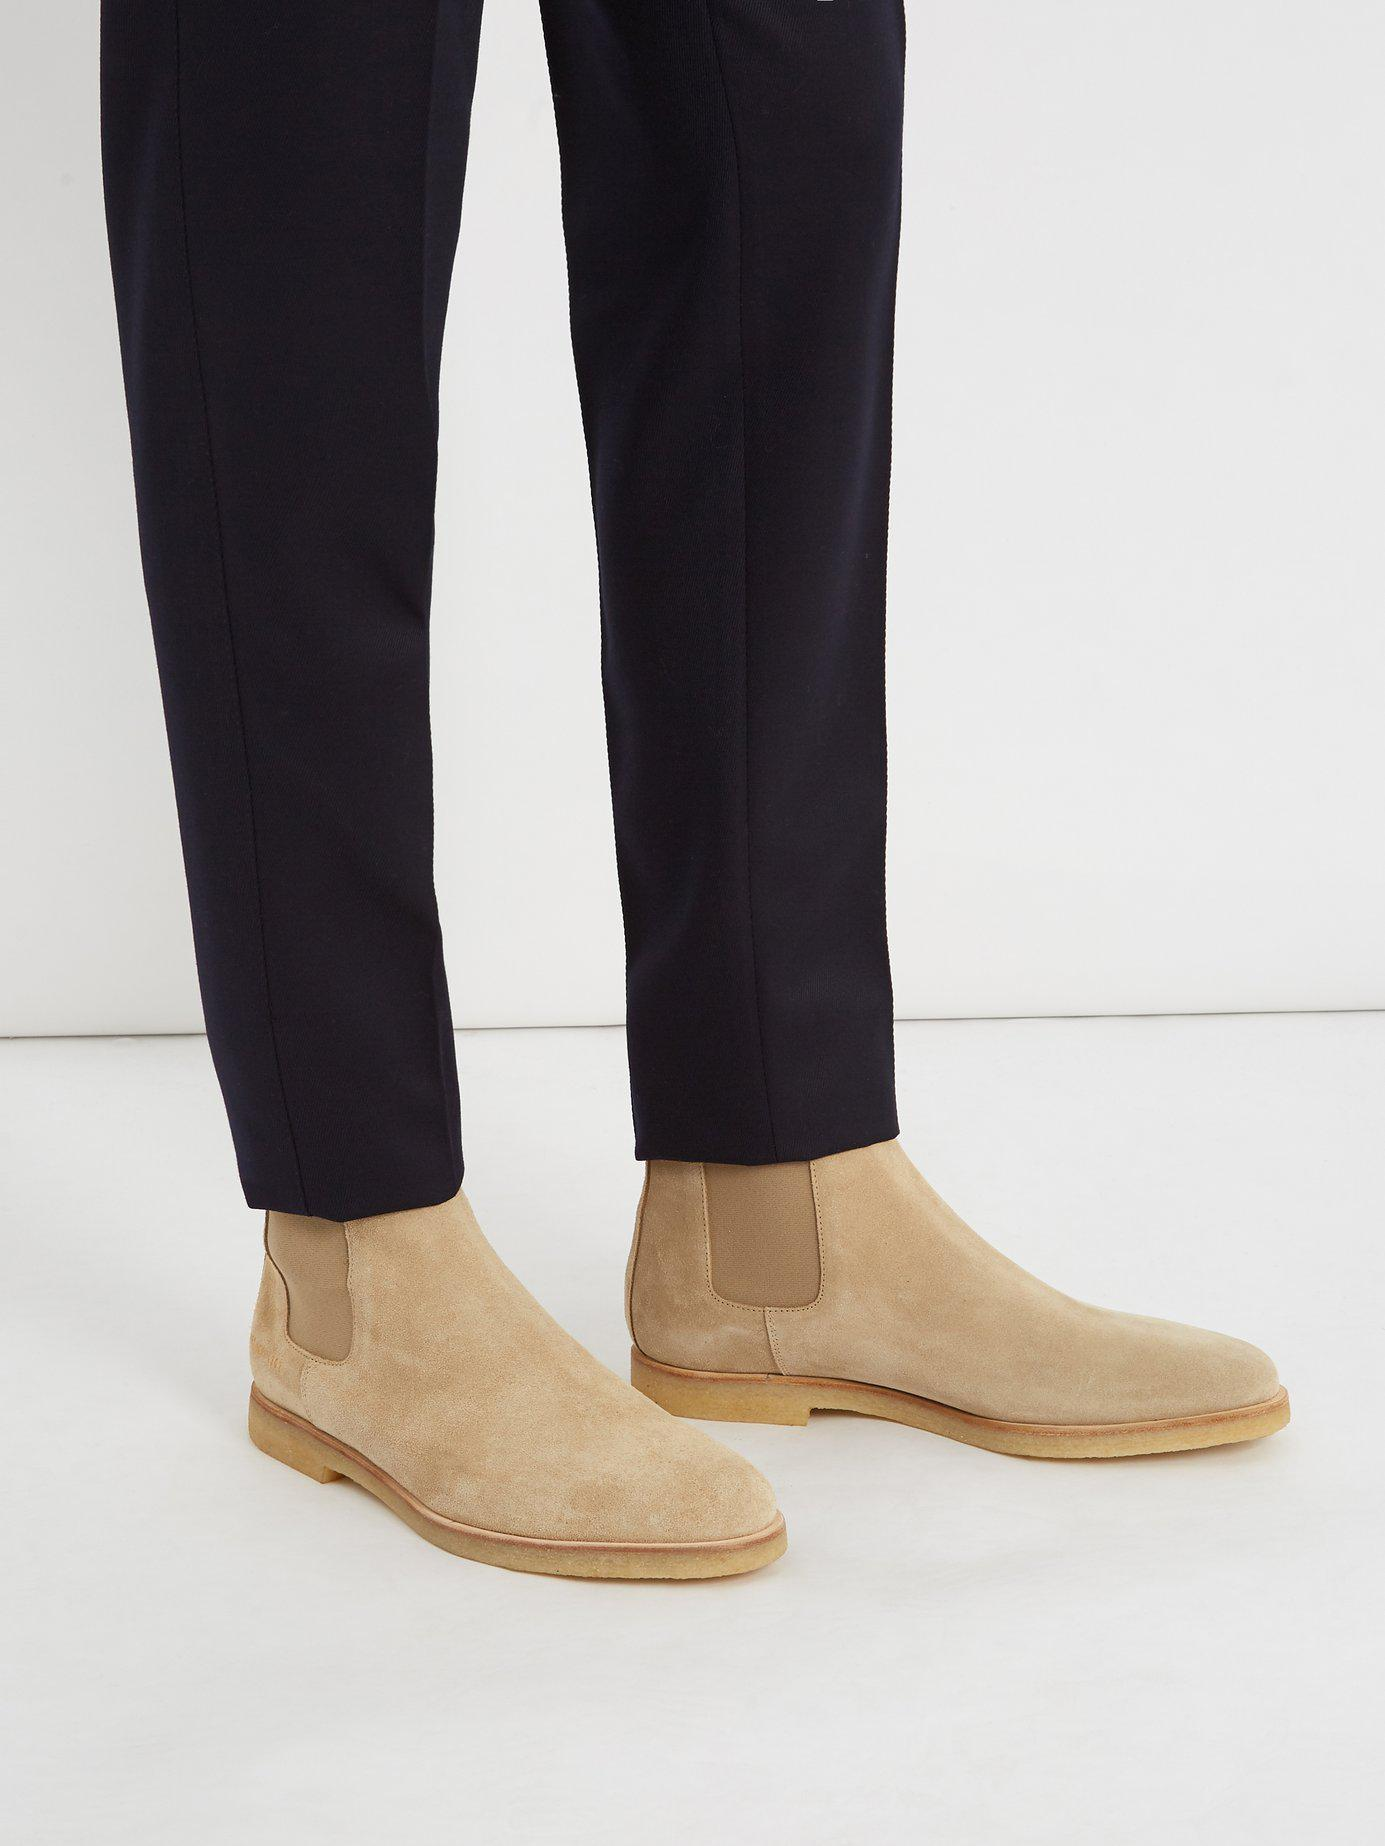 88fe523eac95 Lyst - Common Projects Suede Chelsea Boots in Natural for Men - Save 50%